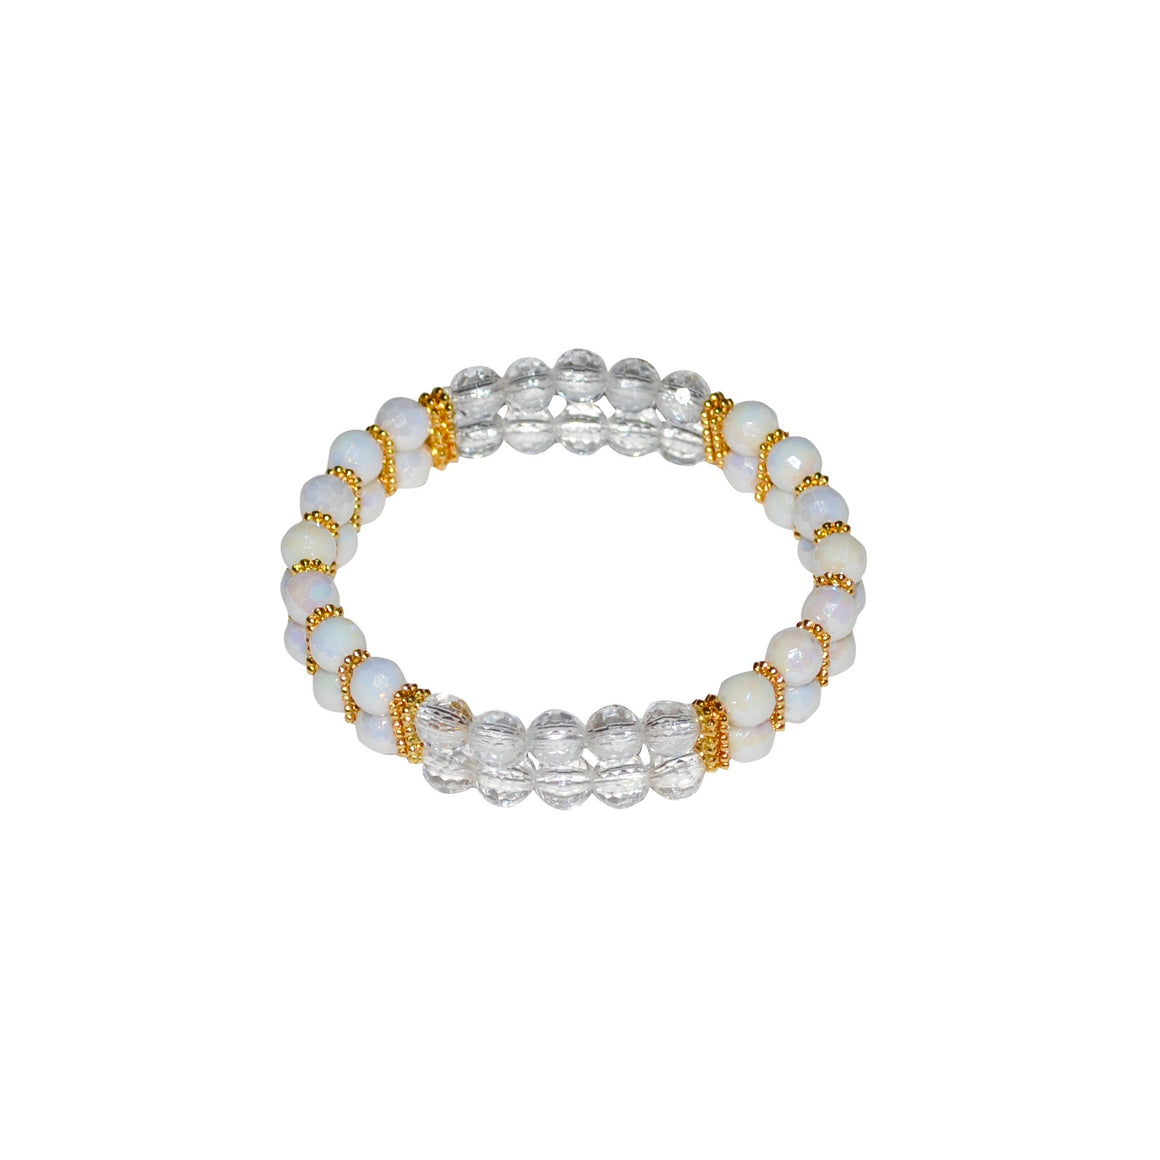 TATE HUDSON MINI CUFF IN WHITE AND LUCITE